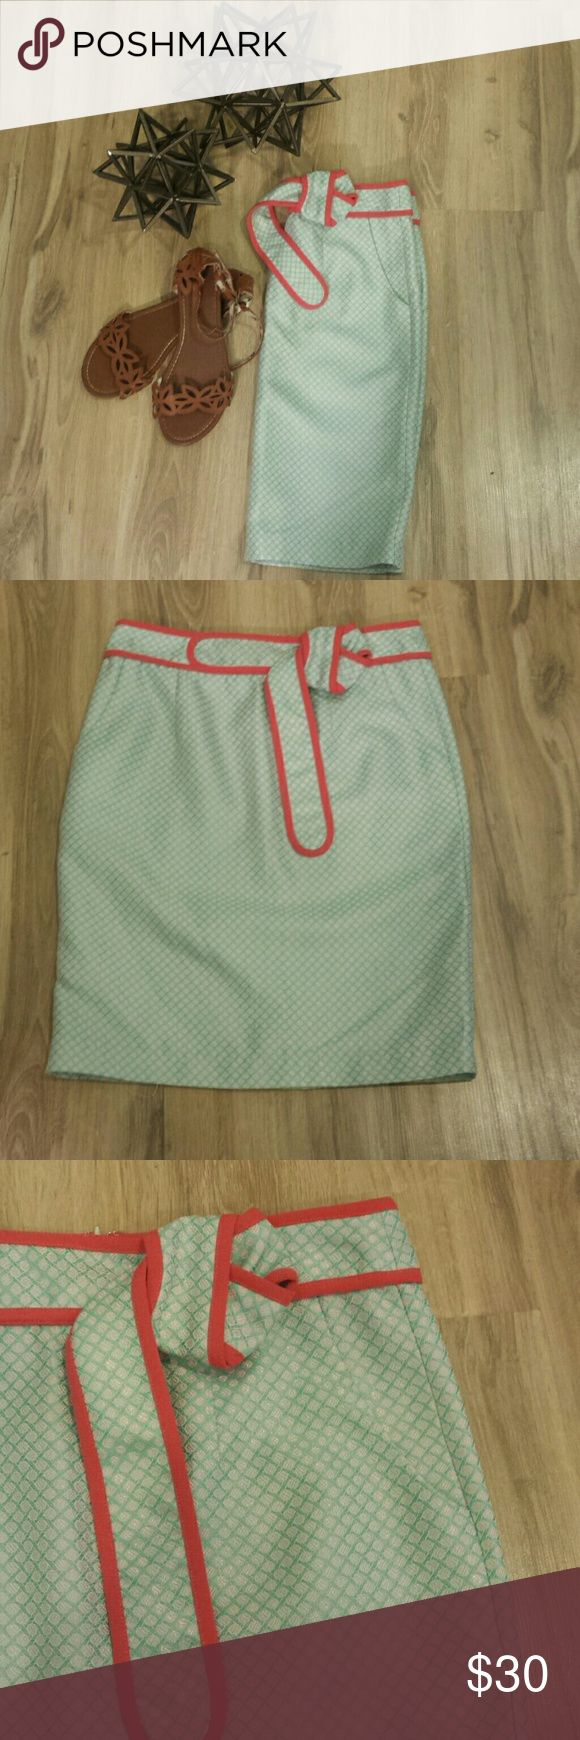 """Boutique Skirt NWT Woman's teal, white, and coral pencil skirt with pockets, brand new from boutique, perfect spring and summer skirt!! Measurements: 14.5"""" waist & 21"""" long eunishop Skirts"""